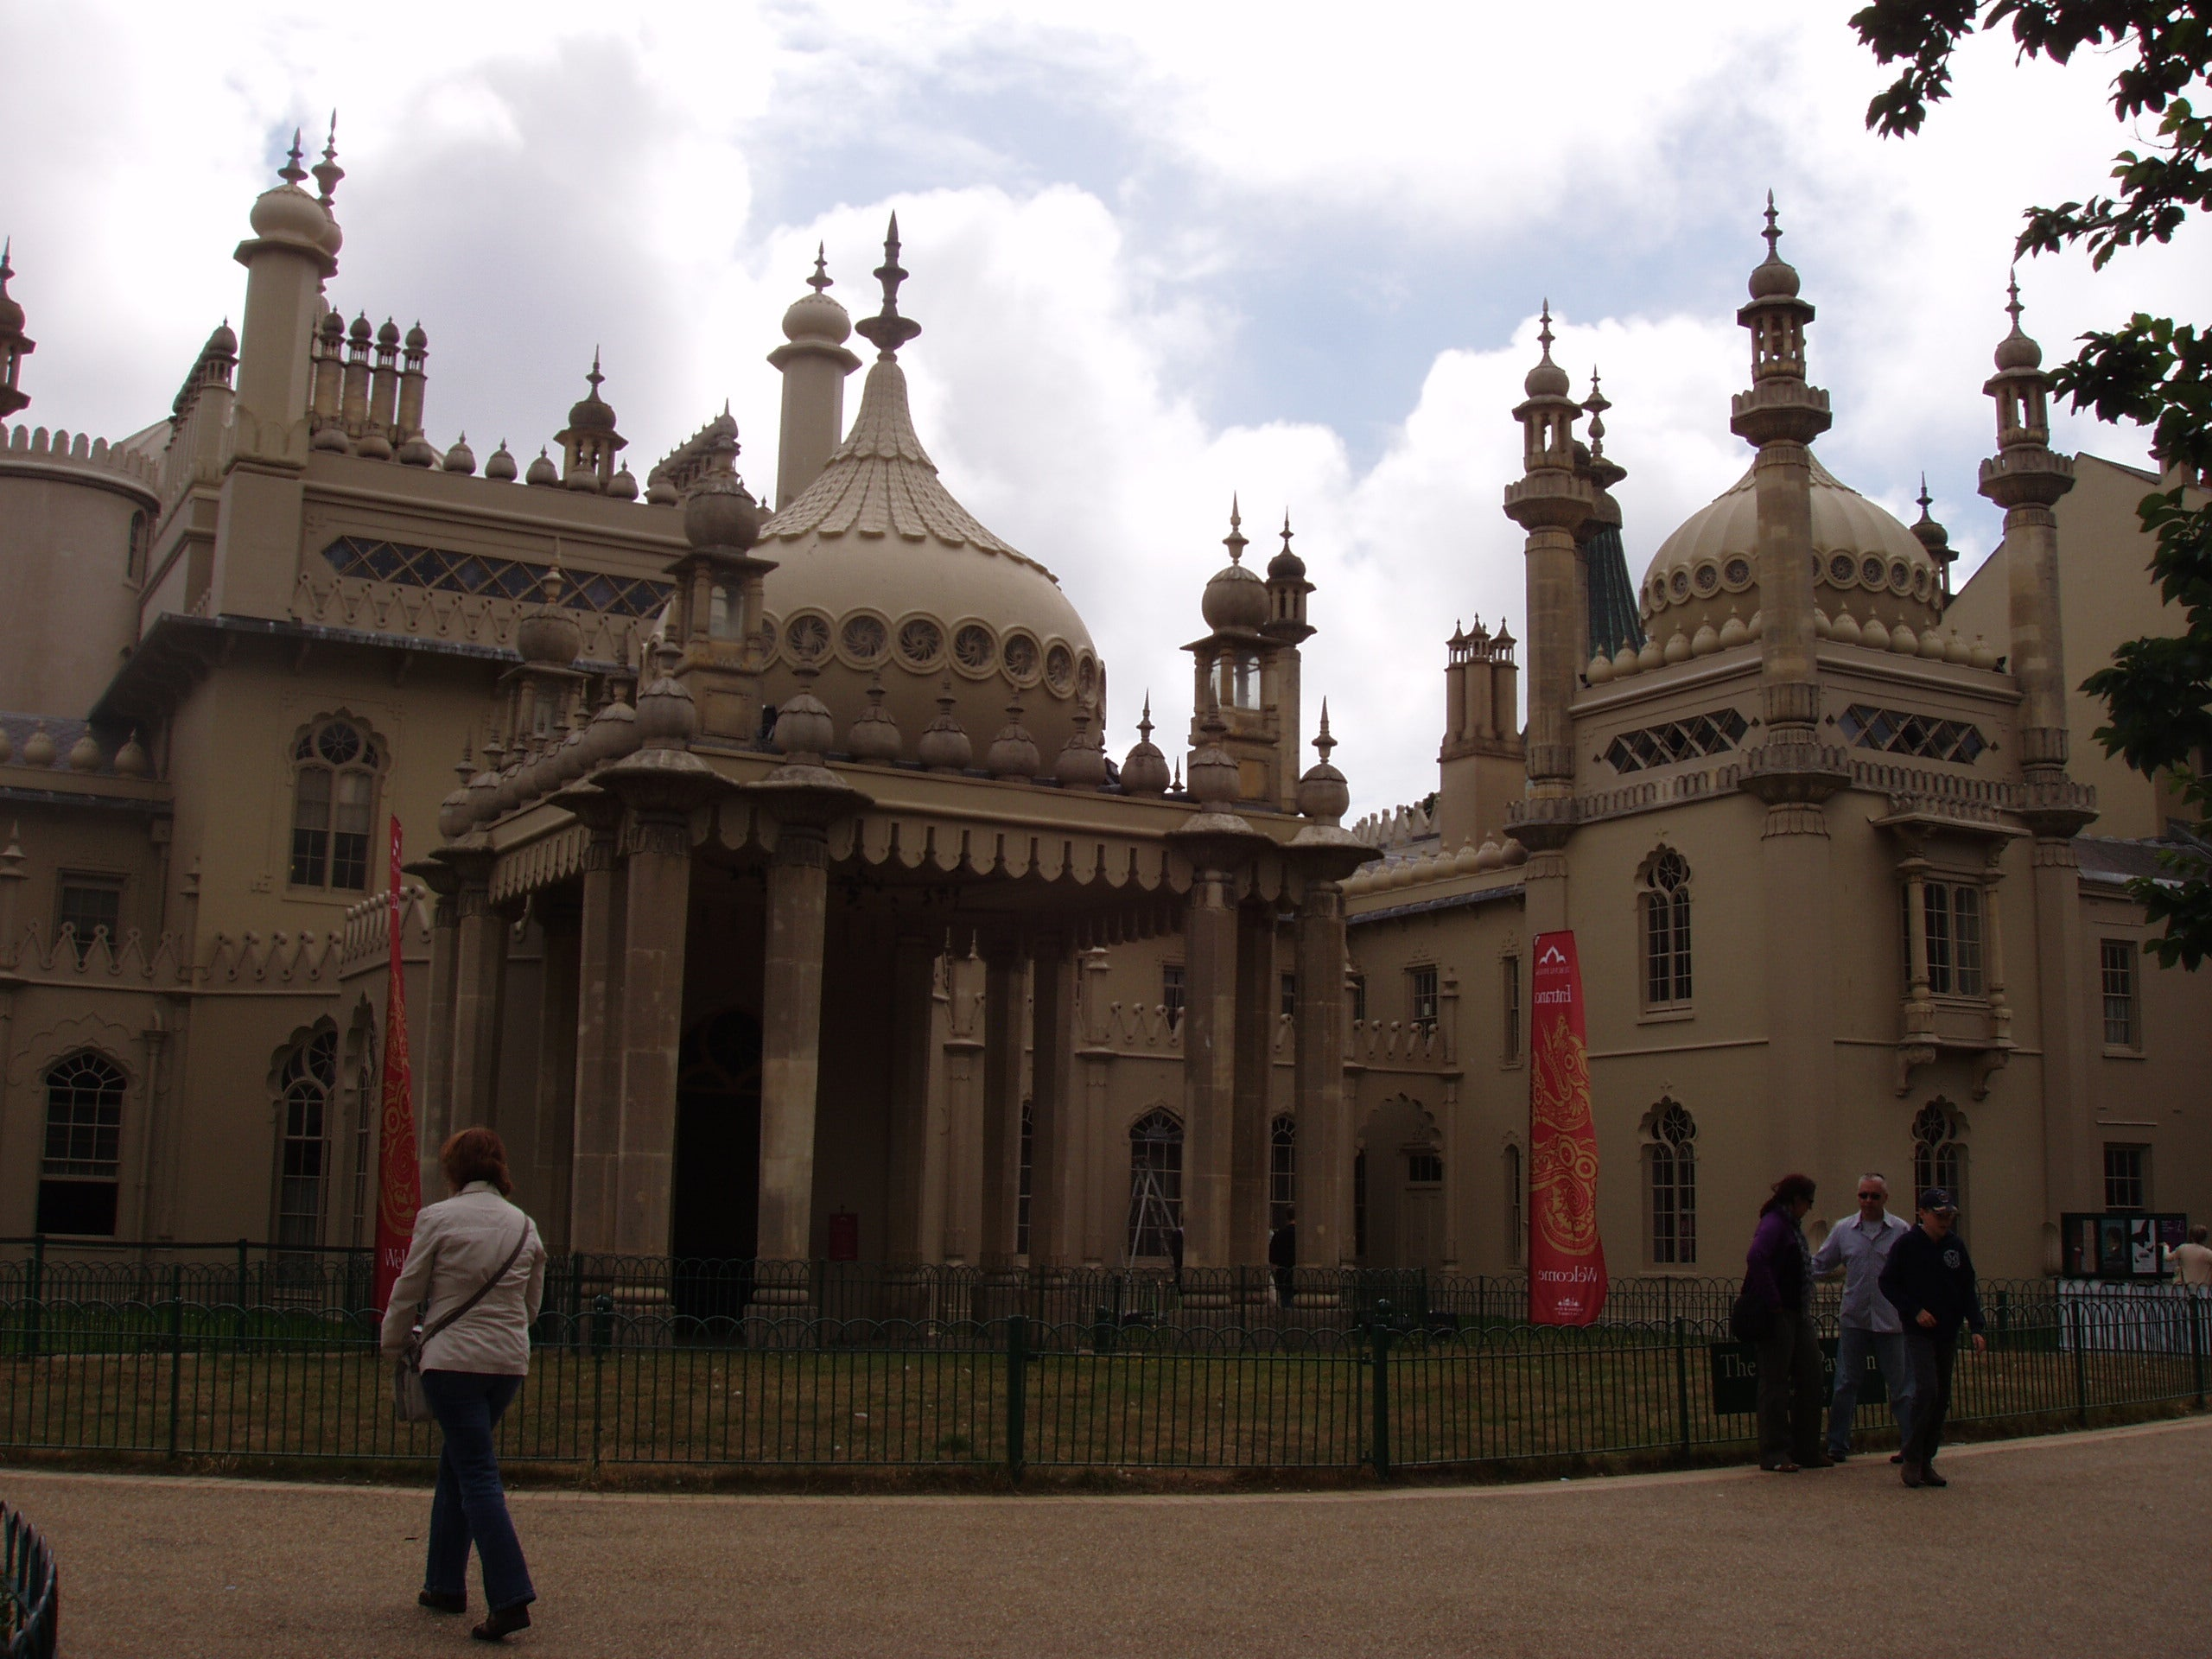 Plaza en Royal Pavilion